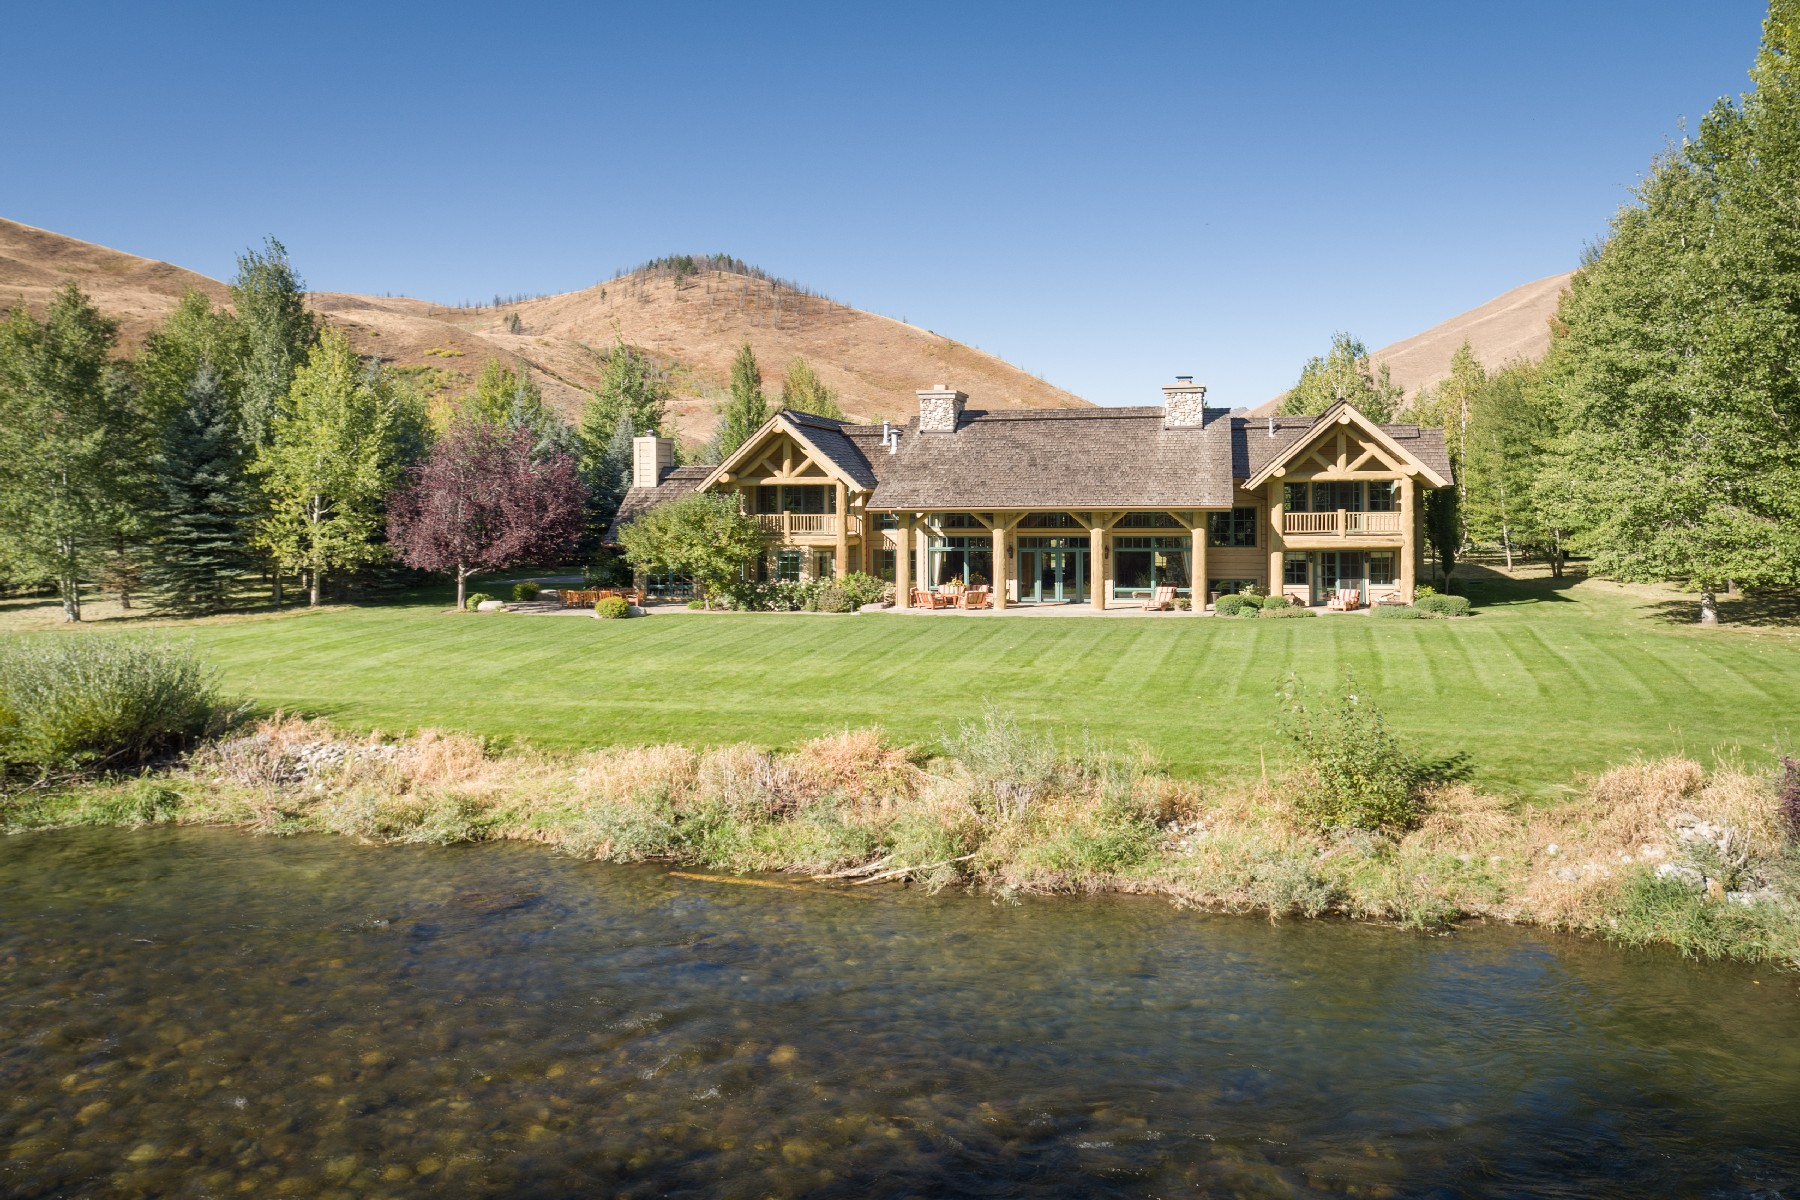 Single Family Home for Sale at Golden Eagle Riverfront Estate 160 S Golden Eagle Dr Hailey, Idaho 83333 United States